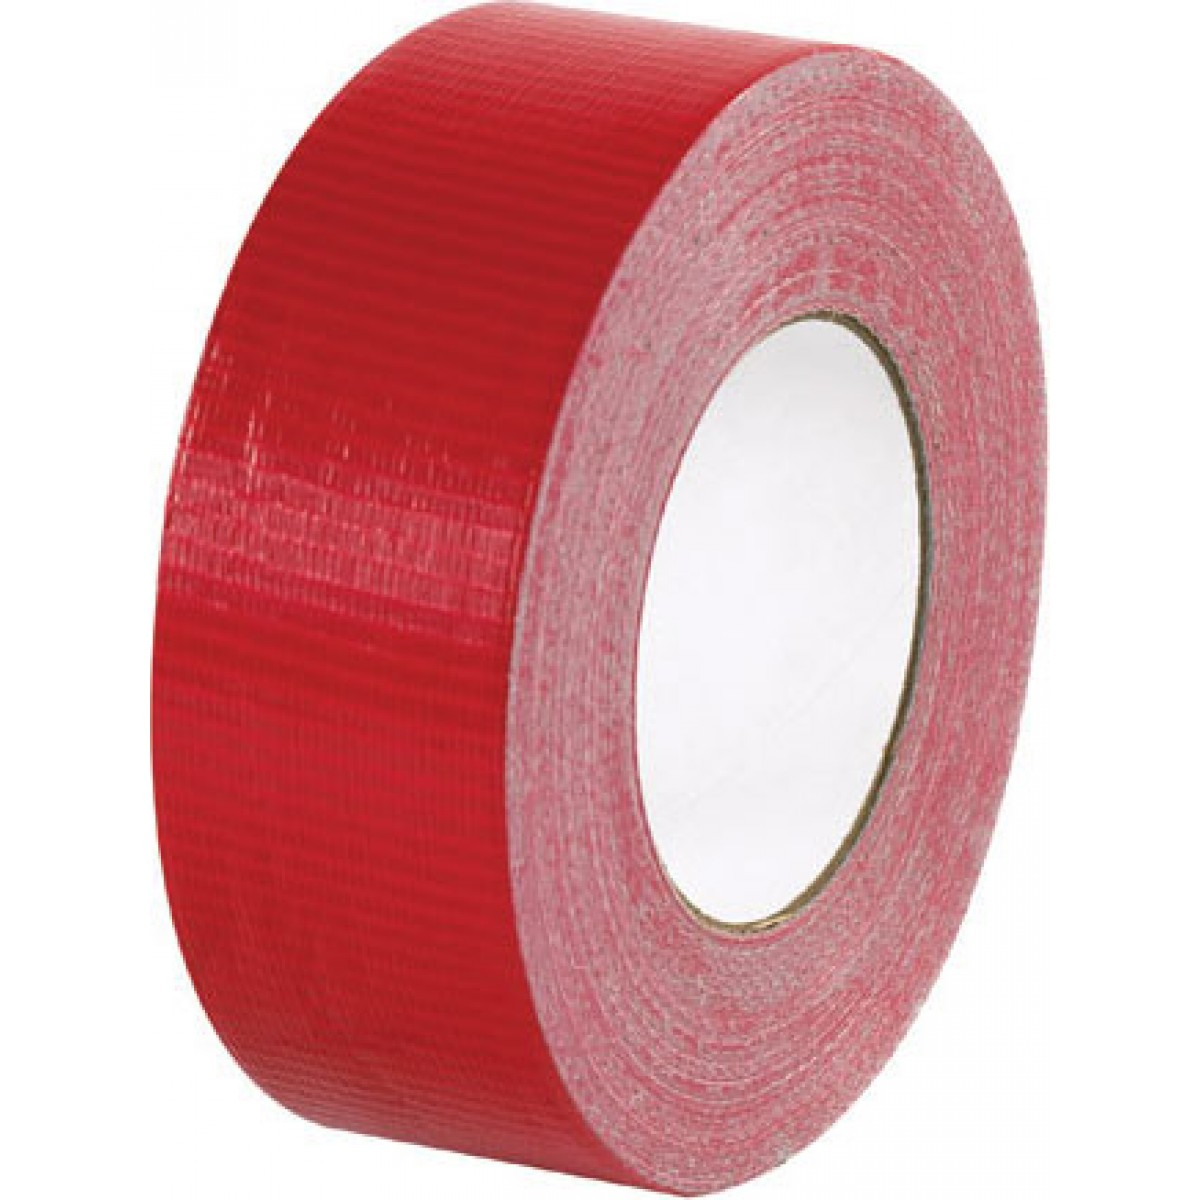 Duct tape online shopping india